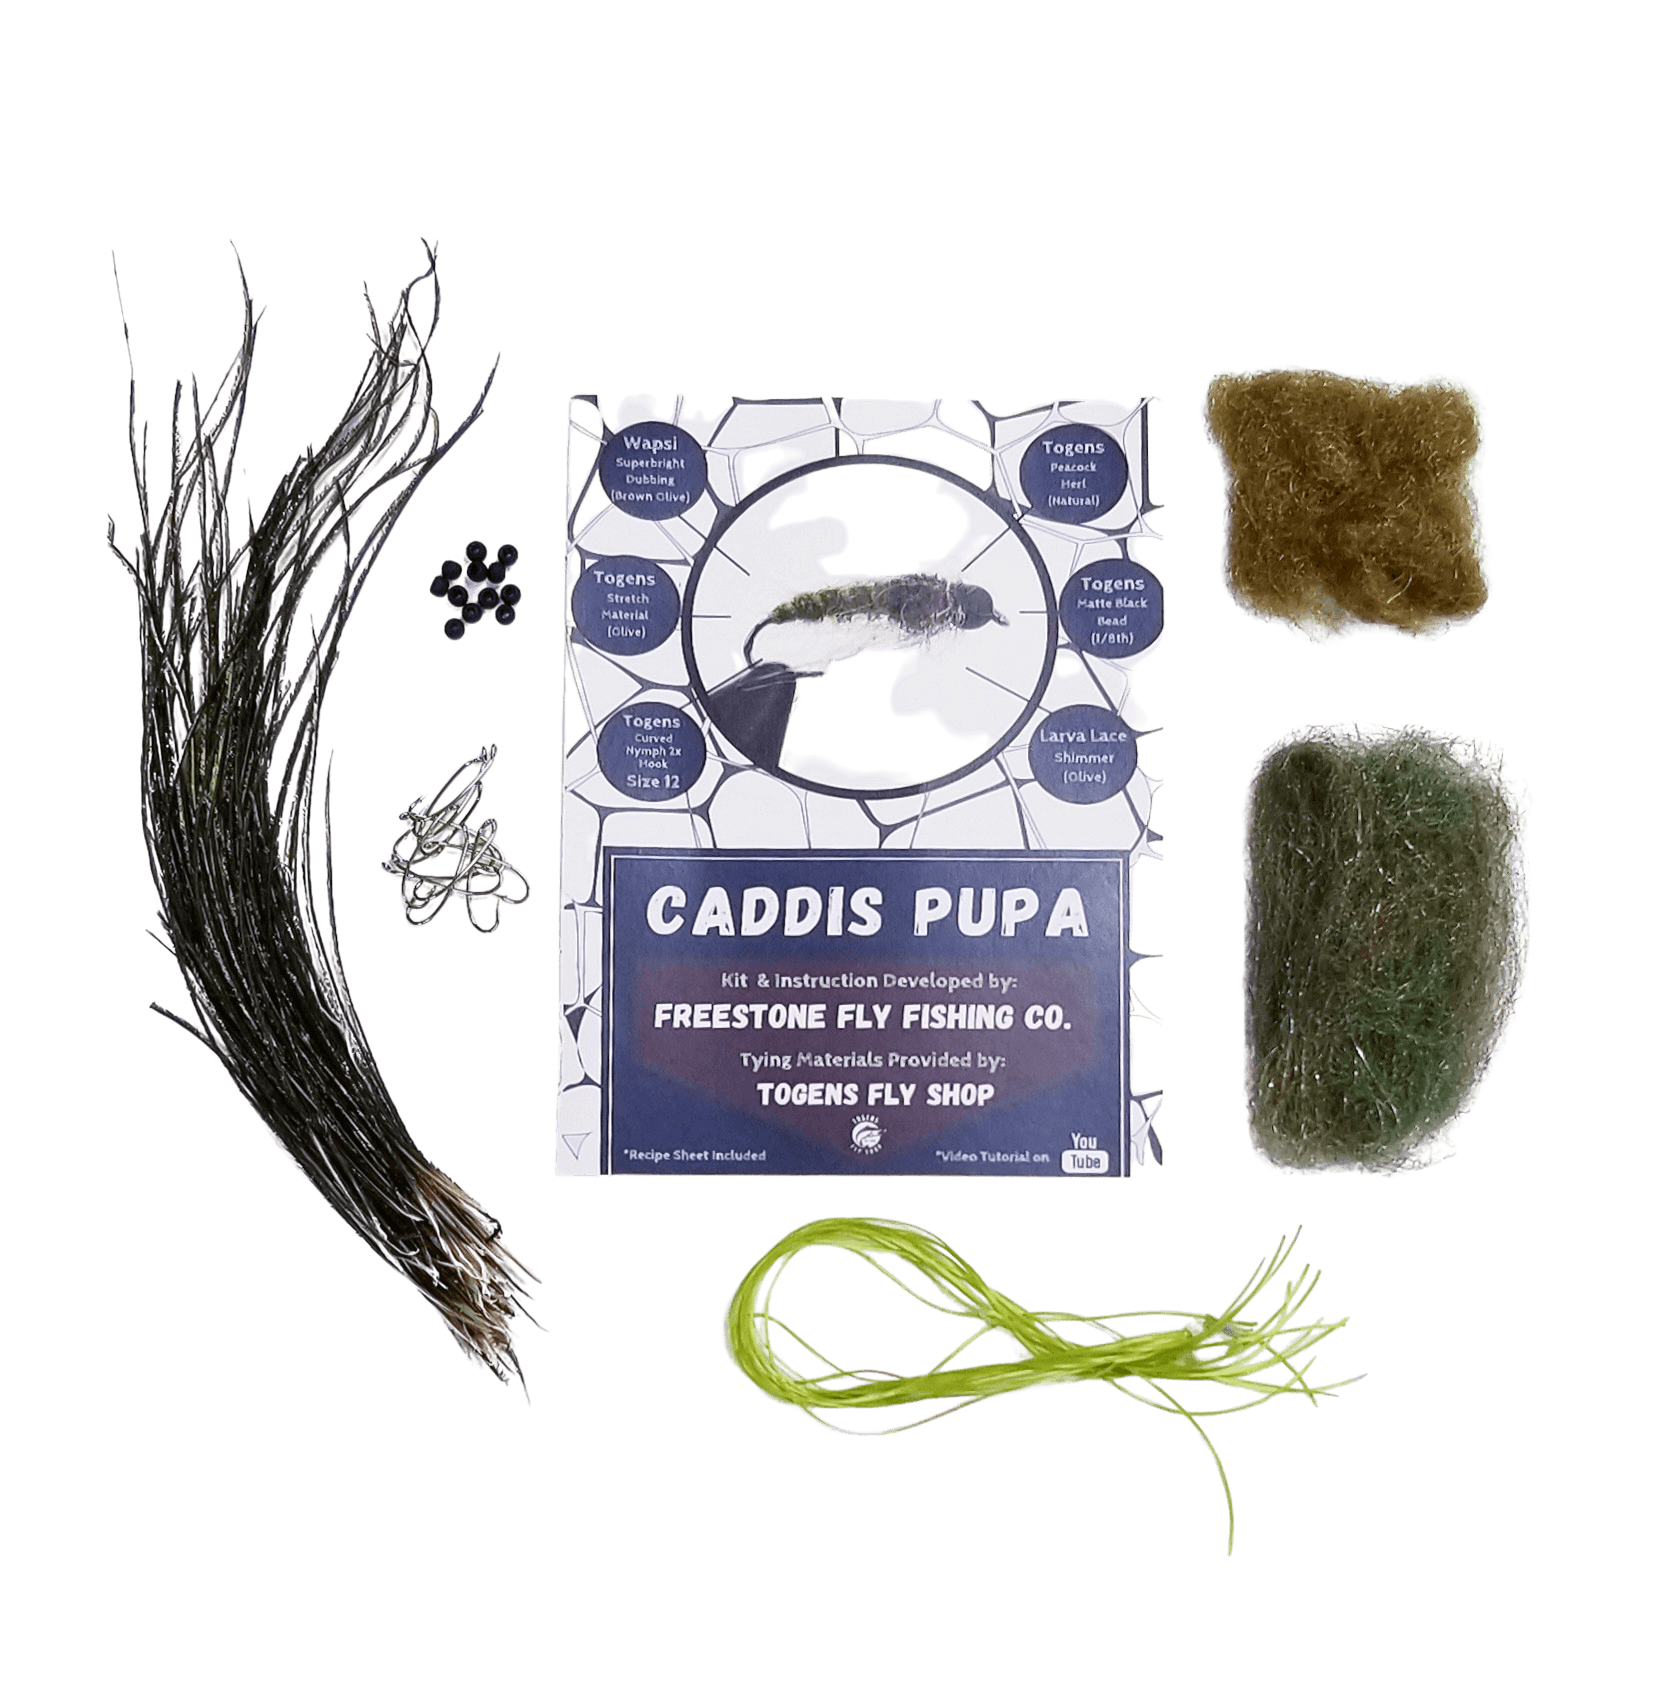 Caddis Pupa - Togens Fly Shopfly tying kit